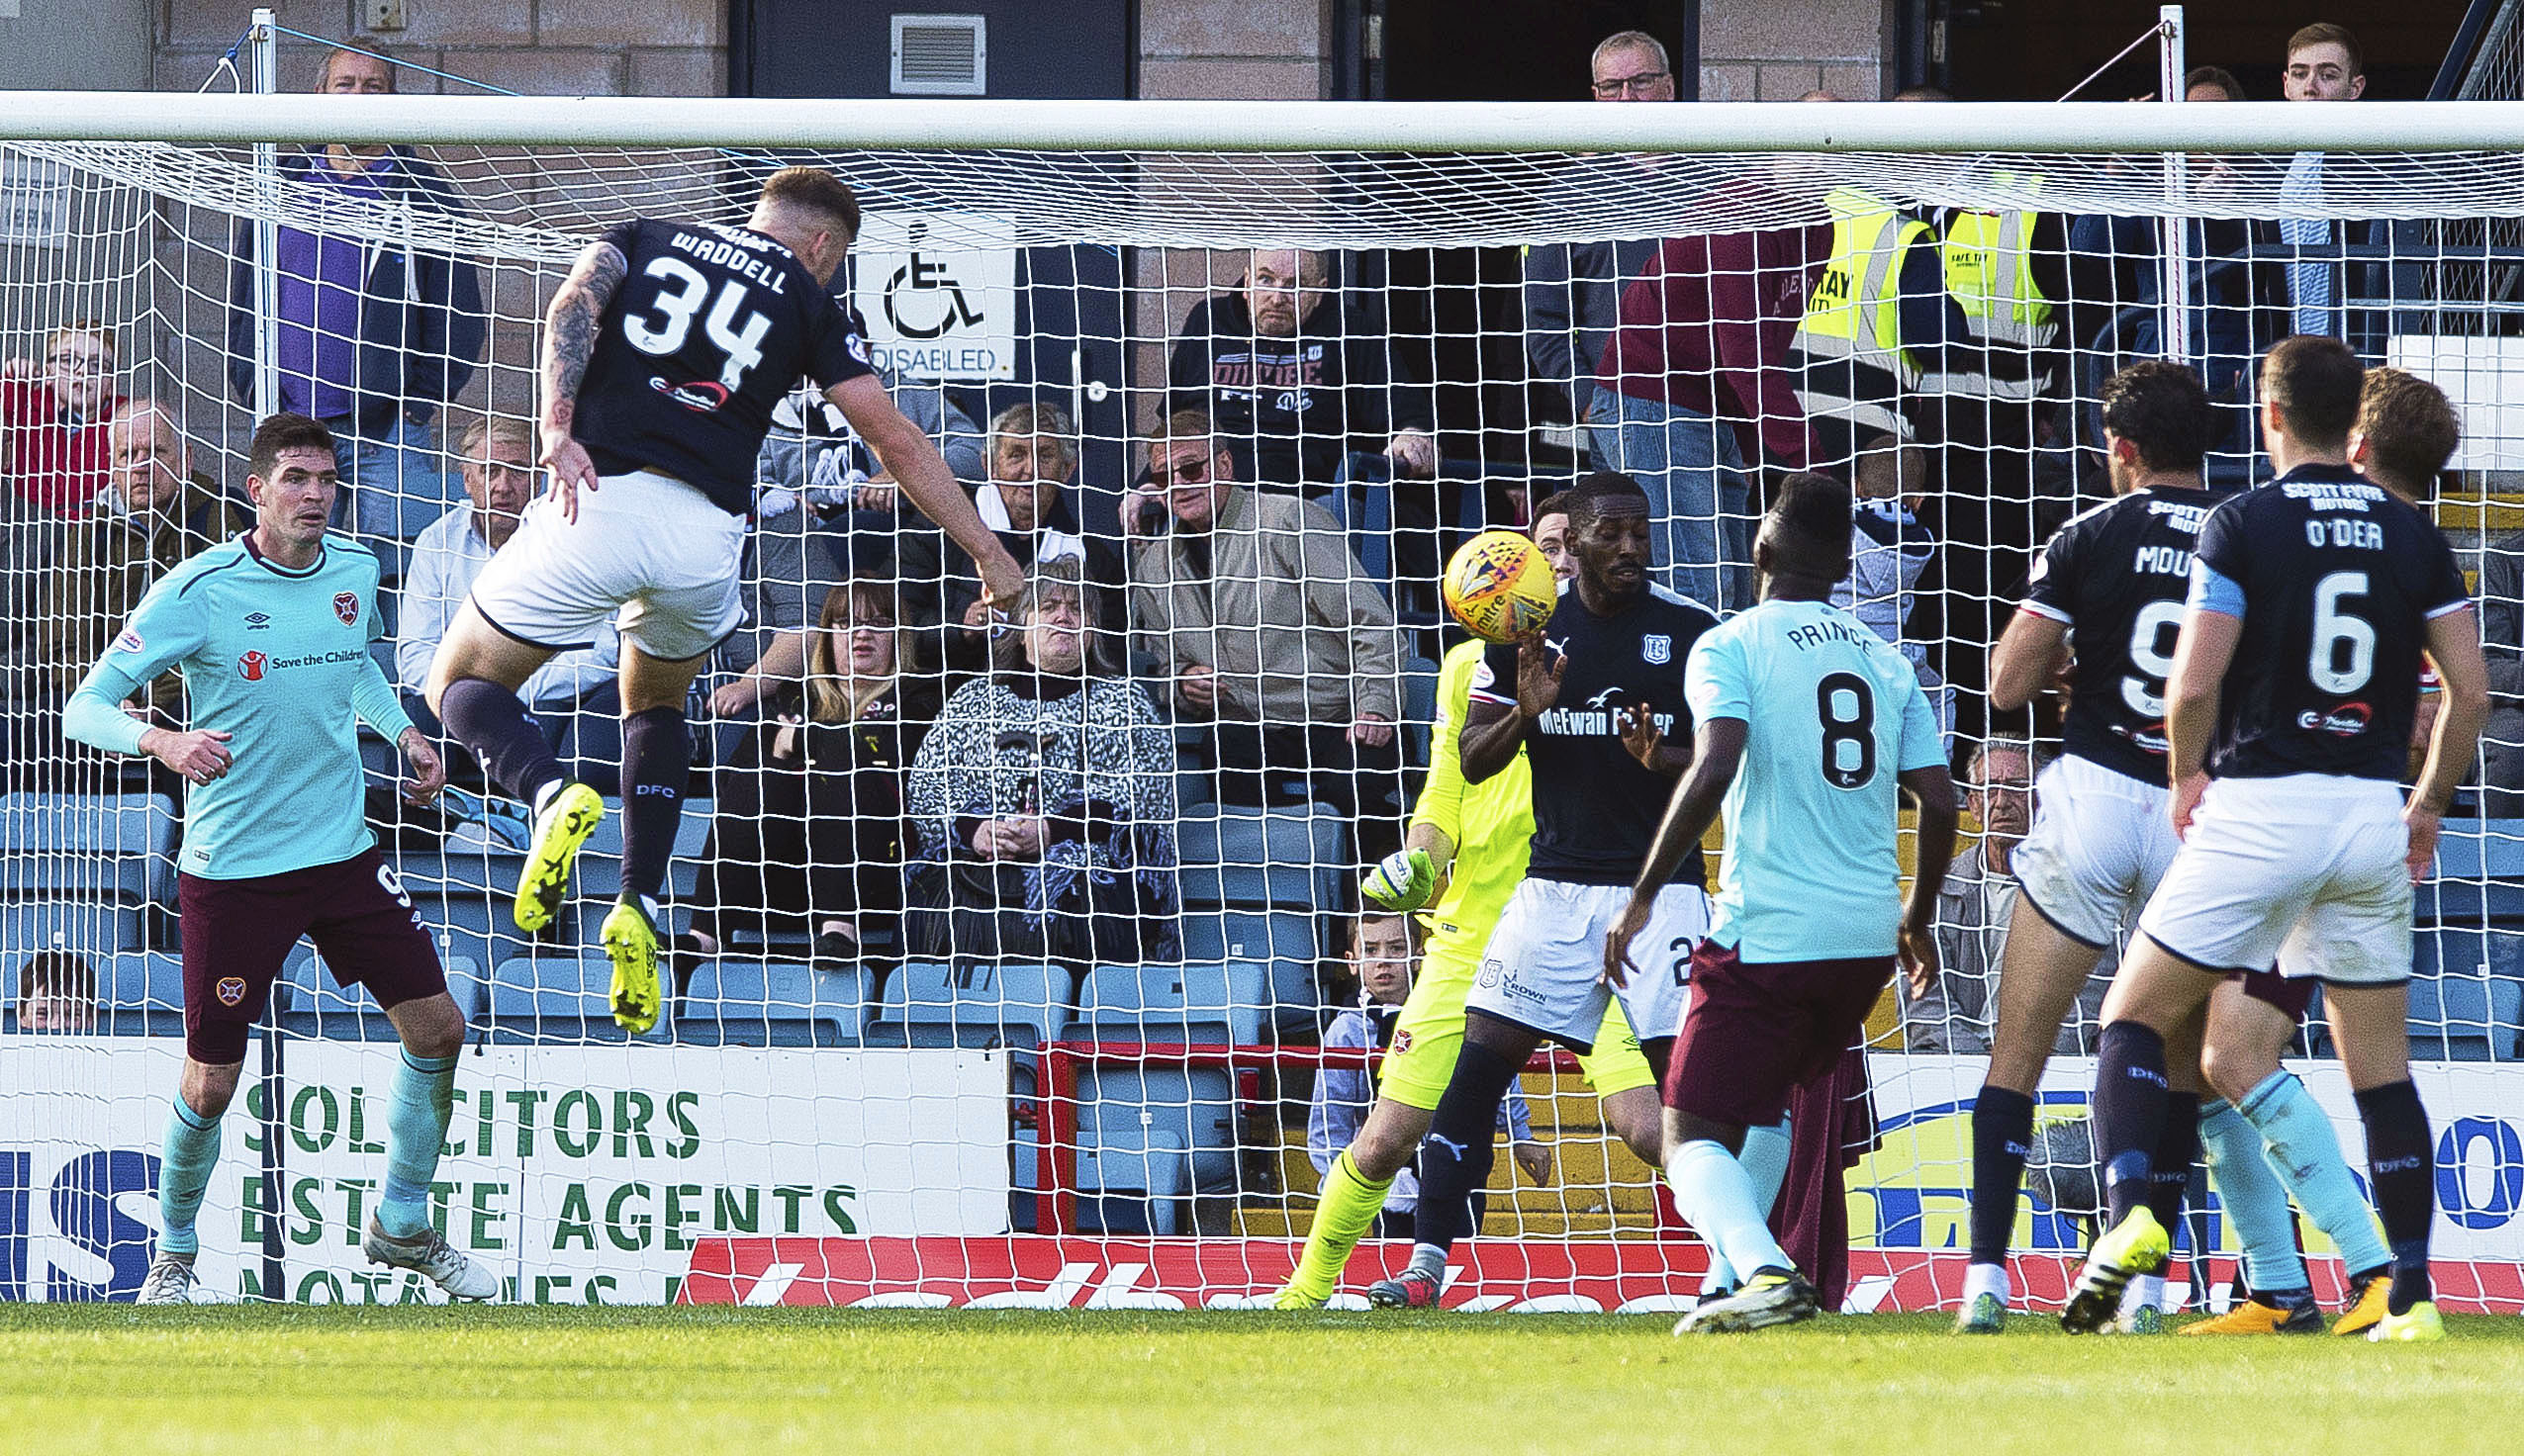 30/09/17 LADBROKES PREMIERSHIP  DUNDEE v HEARTS  DENS PARK - DUNDEE  Dundee's Kerr Waddell heads the home side in front to make it 1-0.